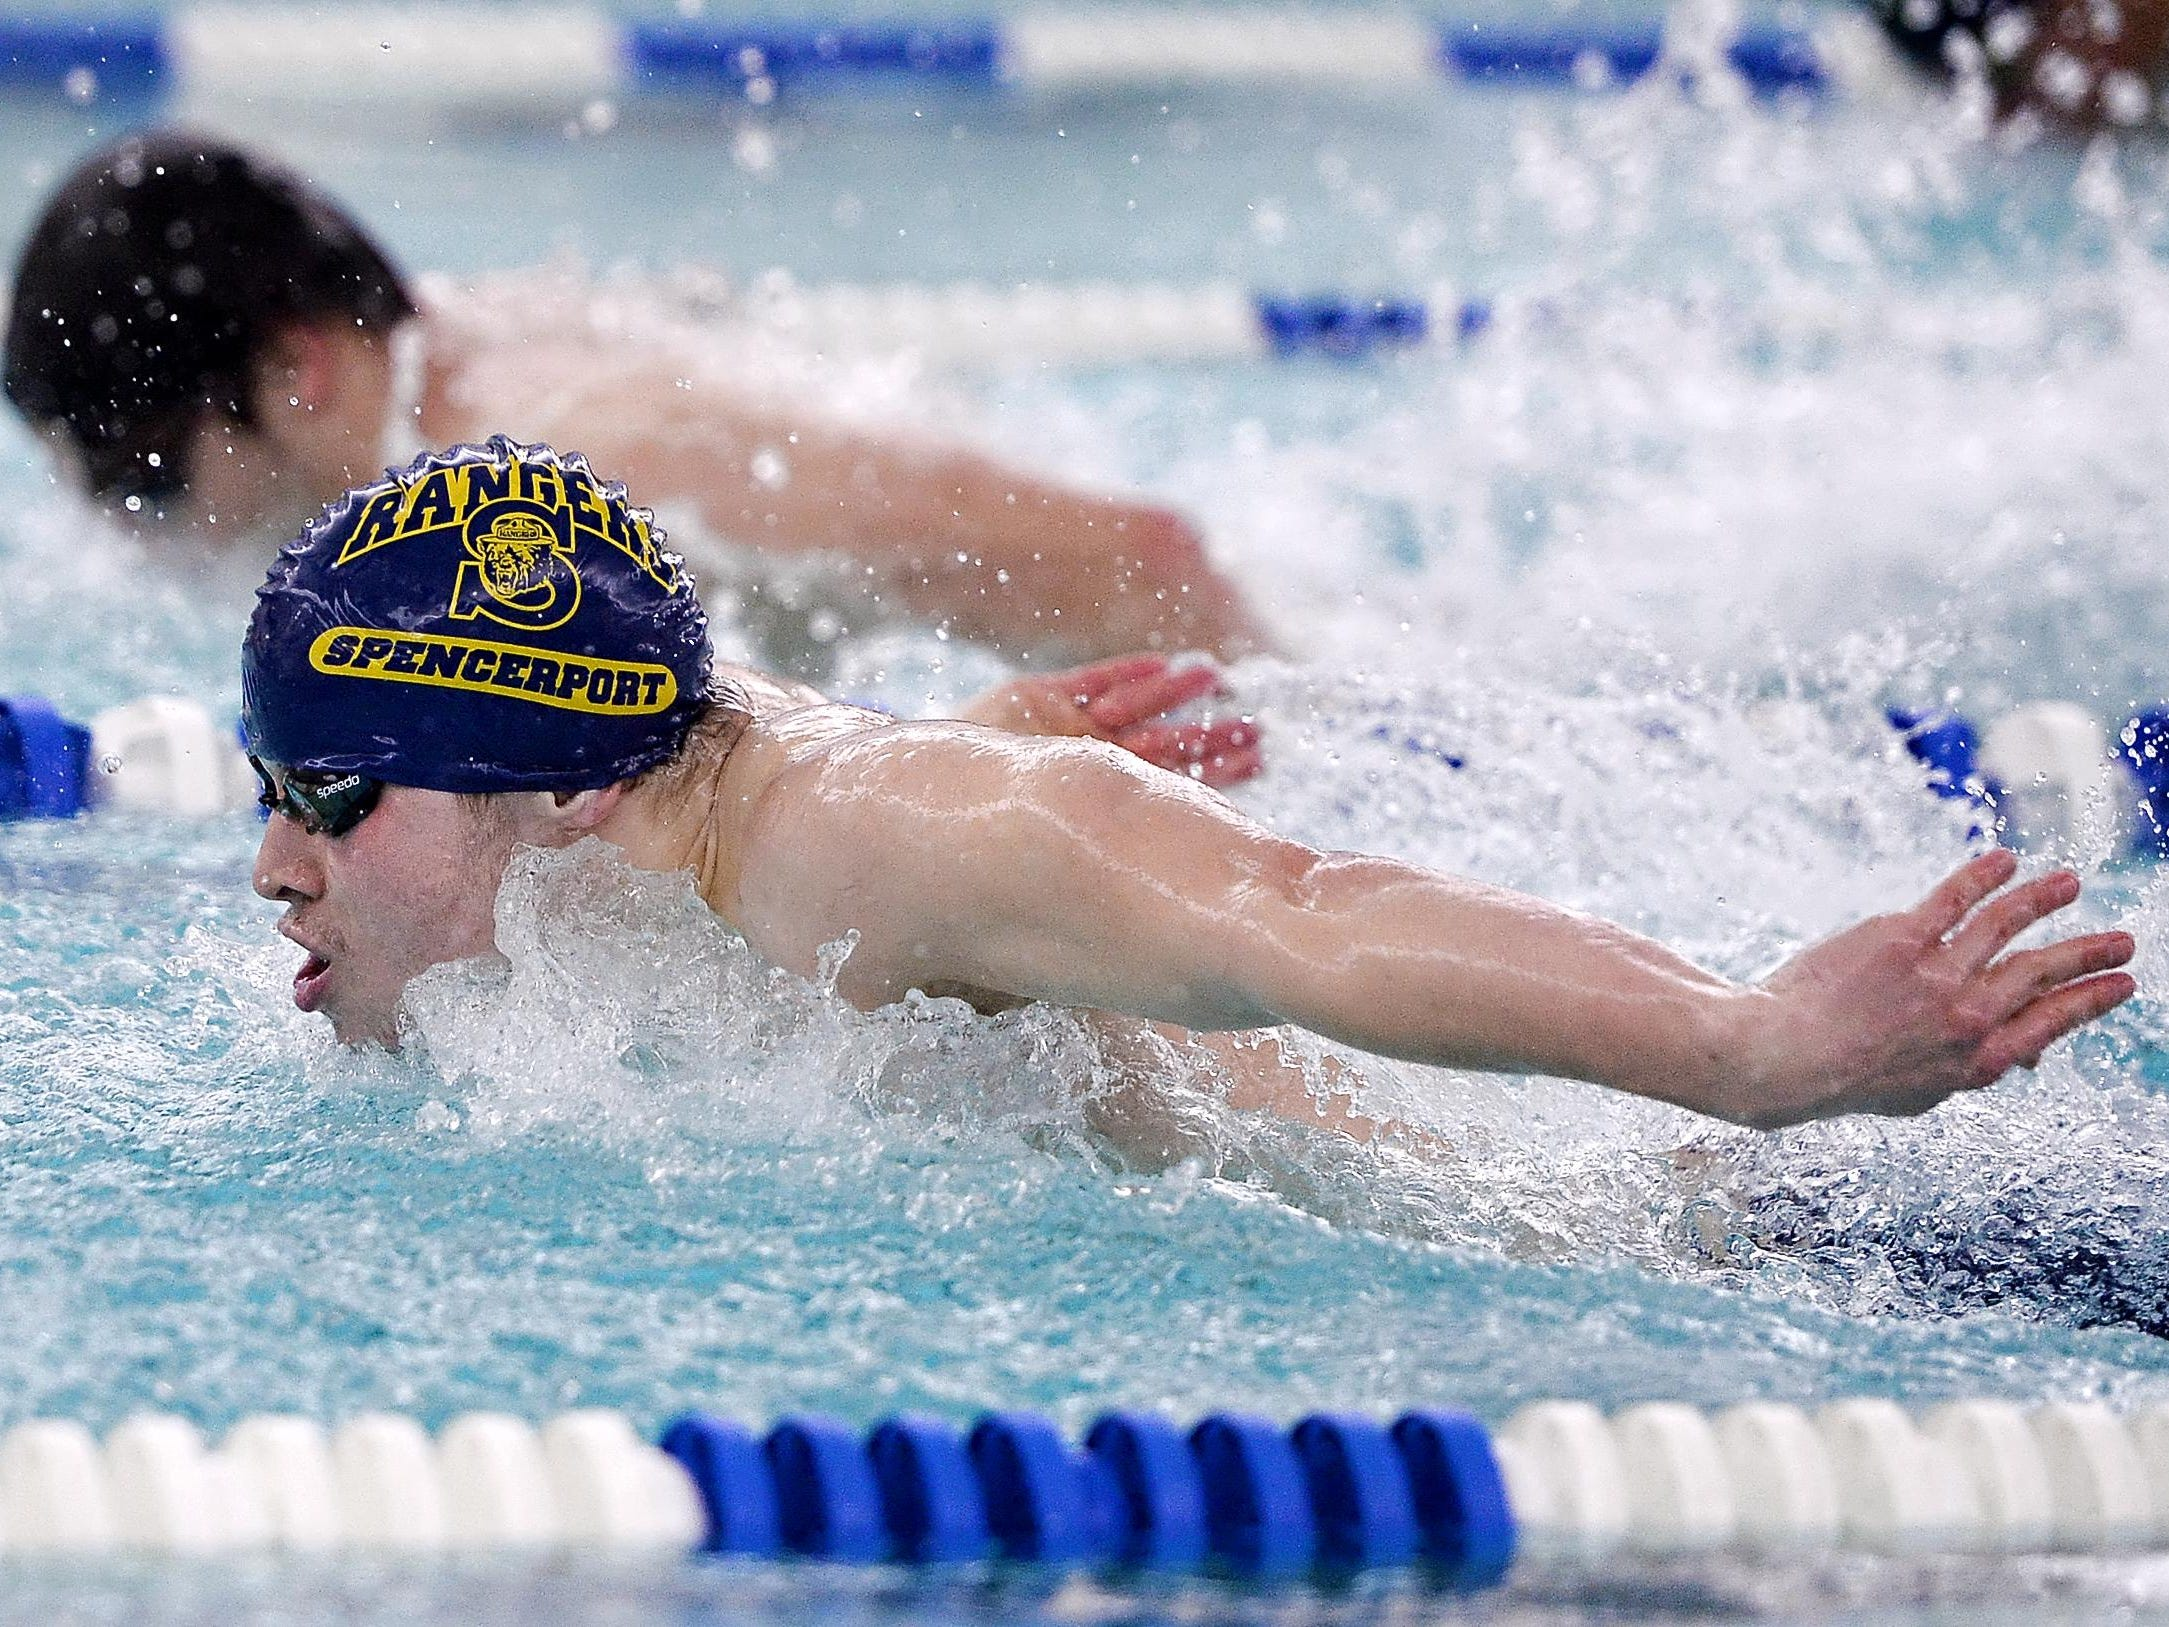 Spencerport's Max Wersinger, front, swims the 100-yard butterfly during a meet at Brockport High School on Thursday, Jan. 8, 2016. He qualified for states with a 53.41 win.